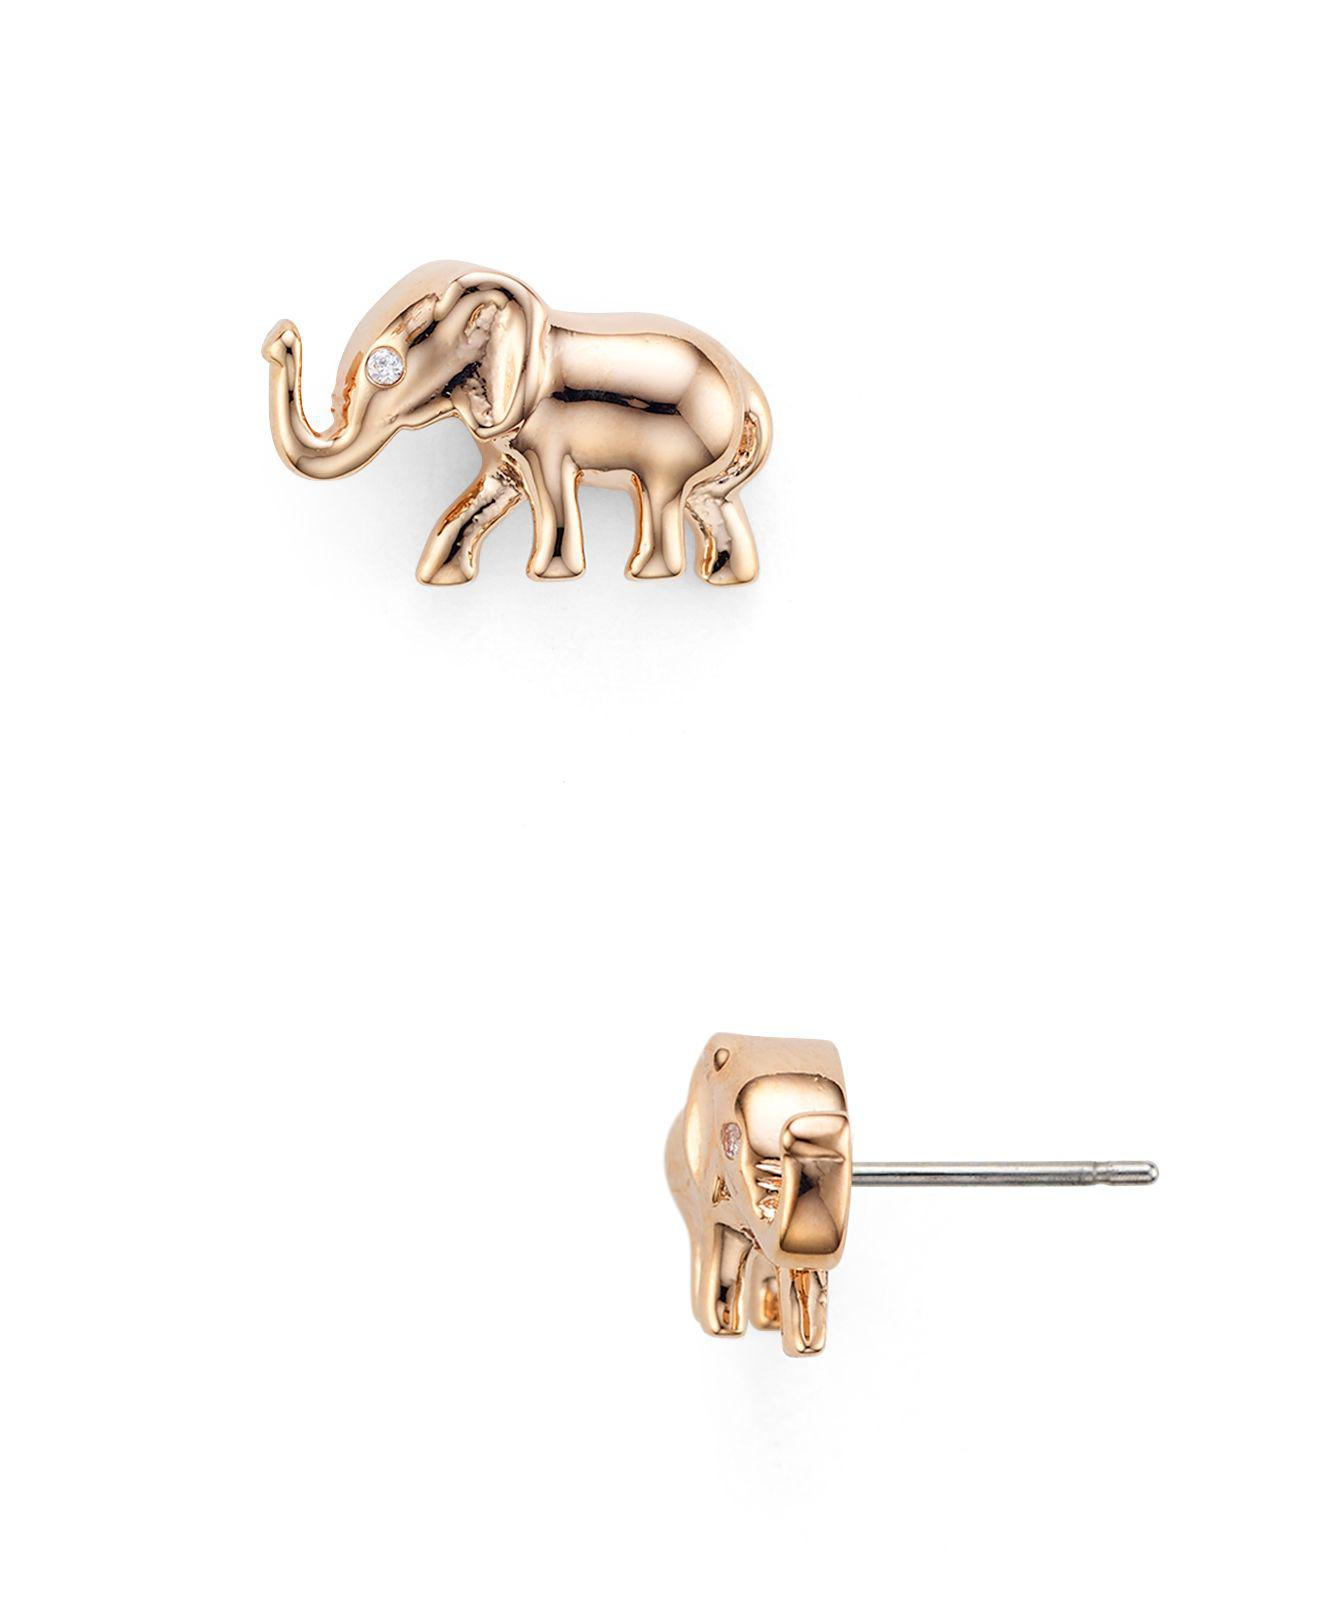 Gold Elephant Stud Earrings Elephant Stud Earrings